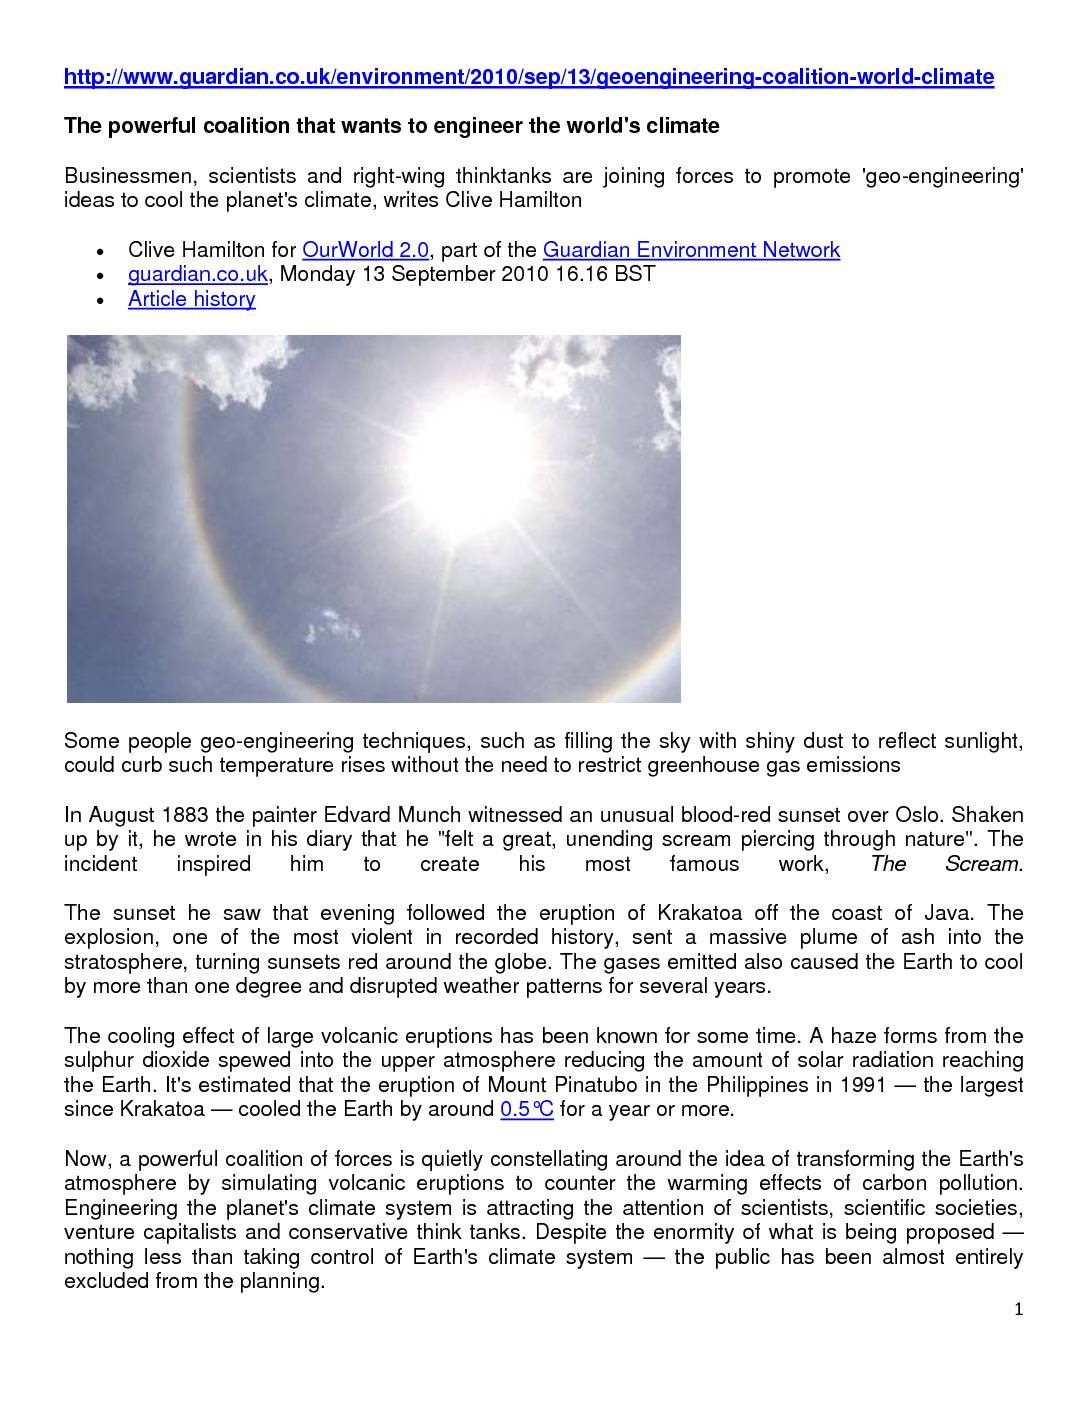 116Q_2010_The_Powerful_Coalition_That_Wants_to_Engineer_the_World_Climate_Guardian.co_.uk_September_13_2010_Geoengineering-pdf